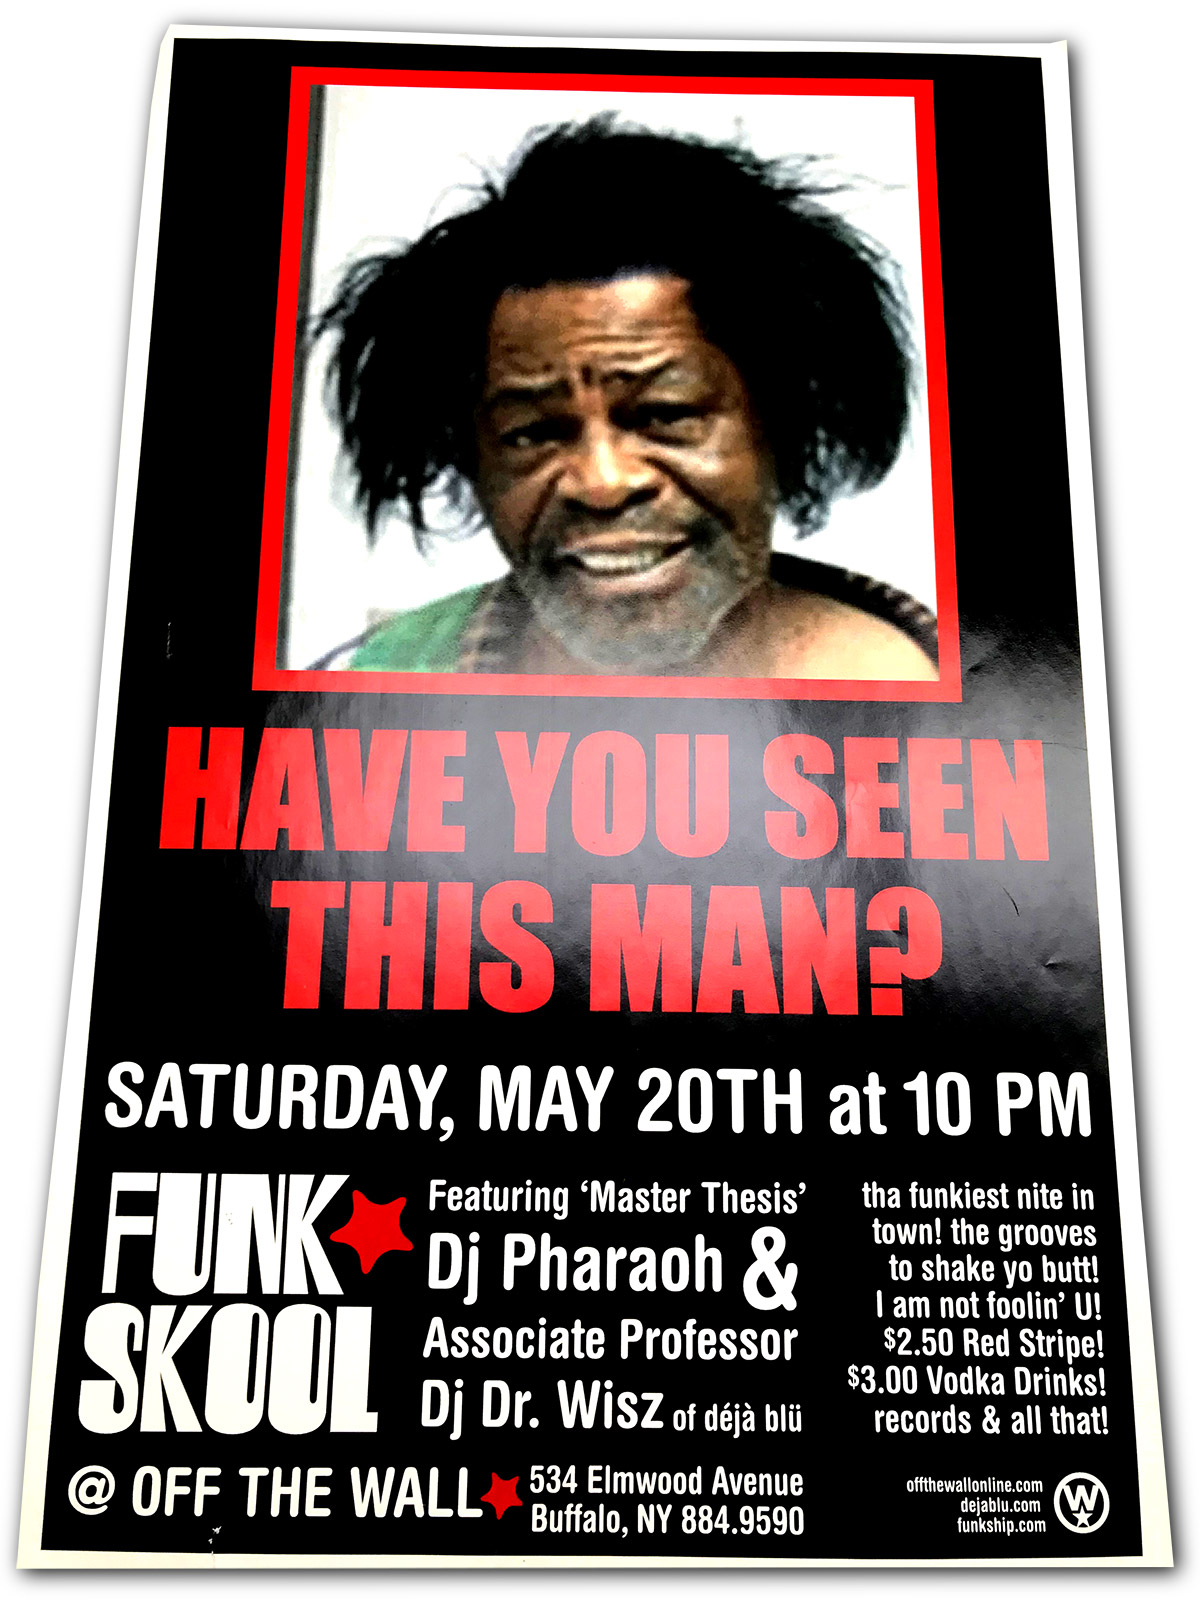 funk stool, dj pharaoh, dr wisz, off the wall, buffalo ny, poster design, dj poster